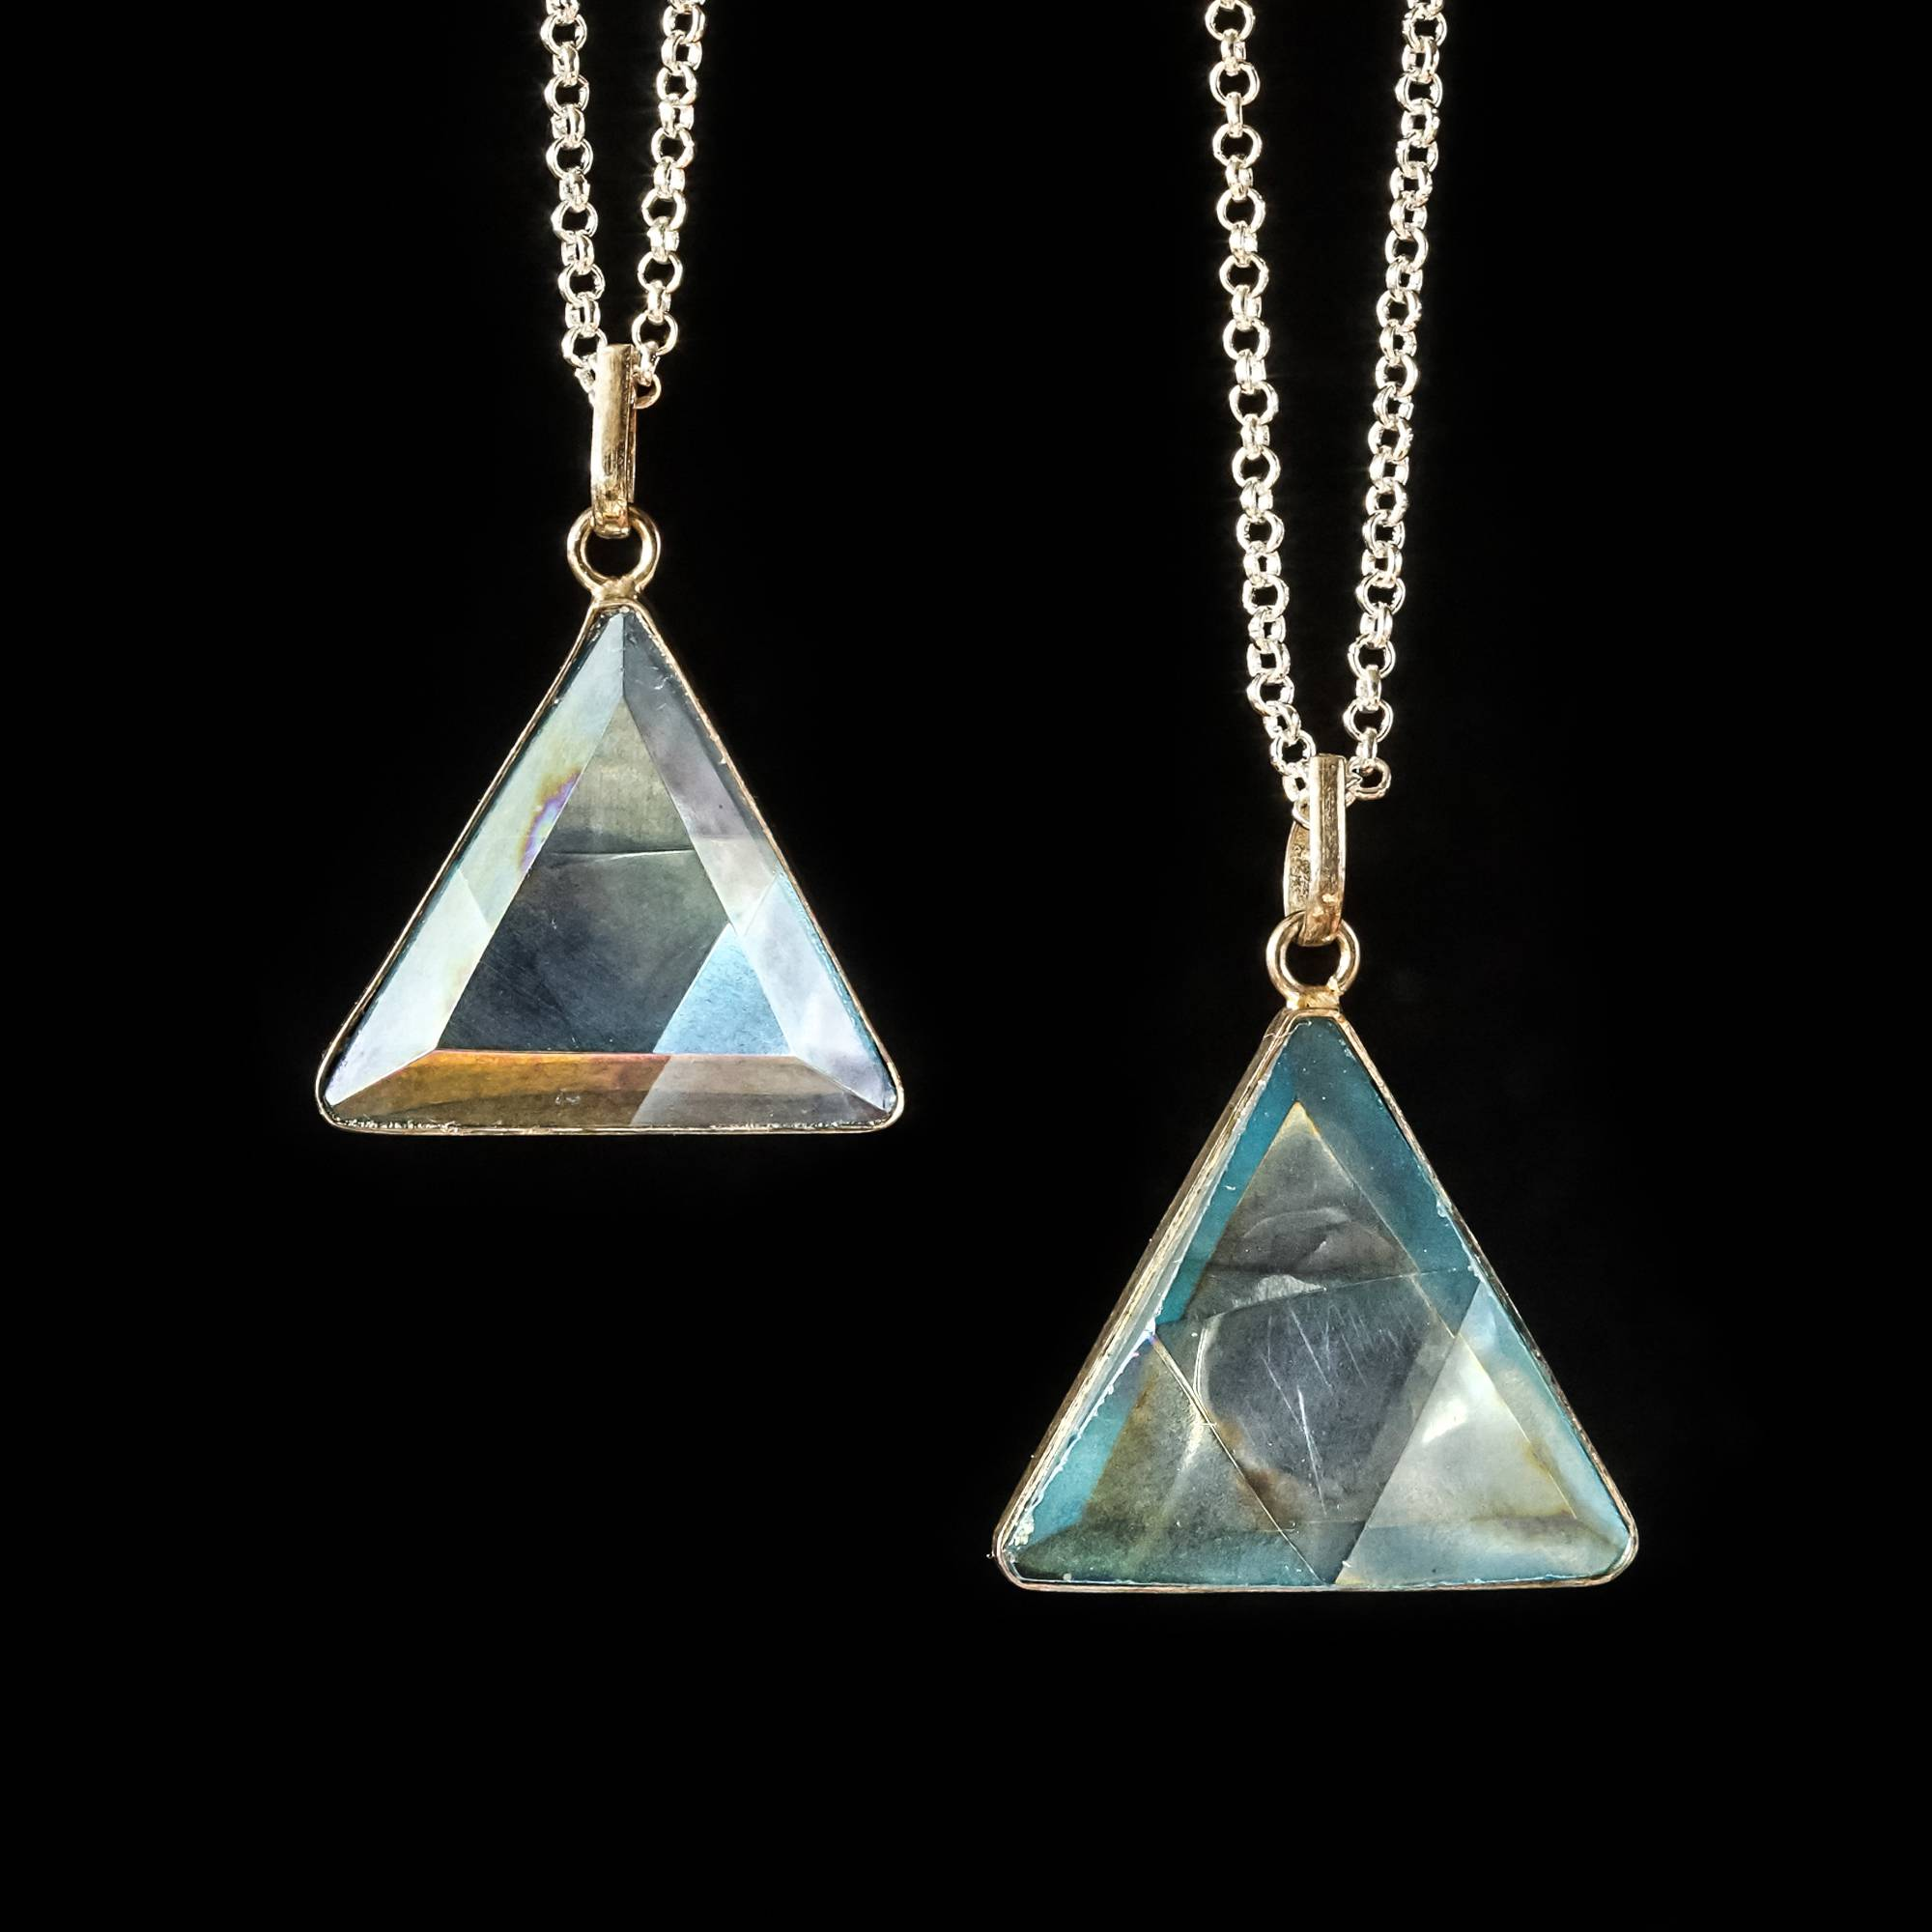 Aqua aura triangle lemurian quartz pendants for various intentions aqua aura triangle lemurian quartz pendants mozeypictures Image collections